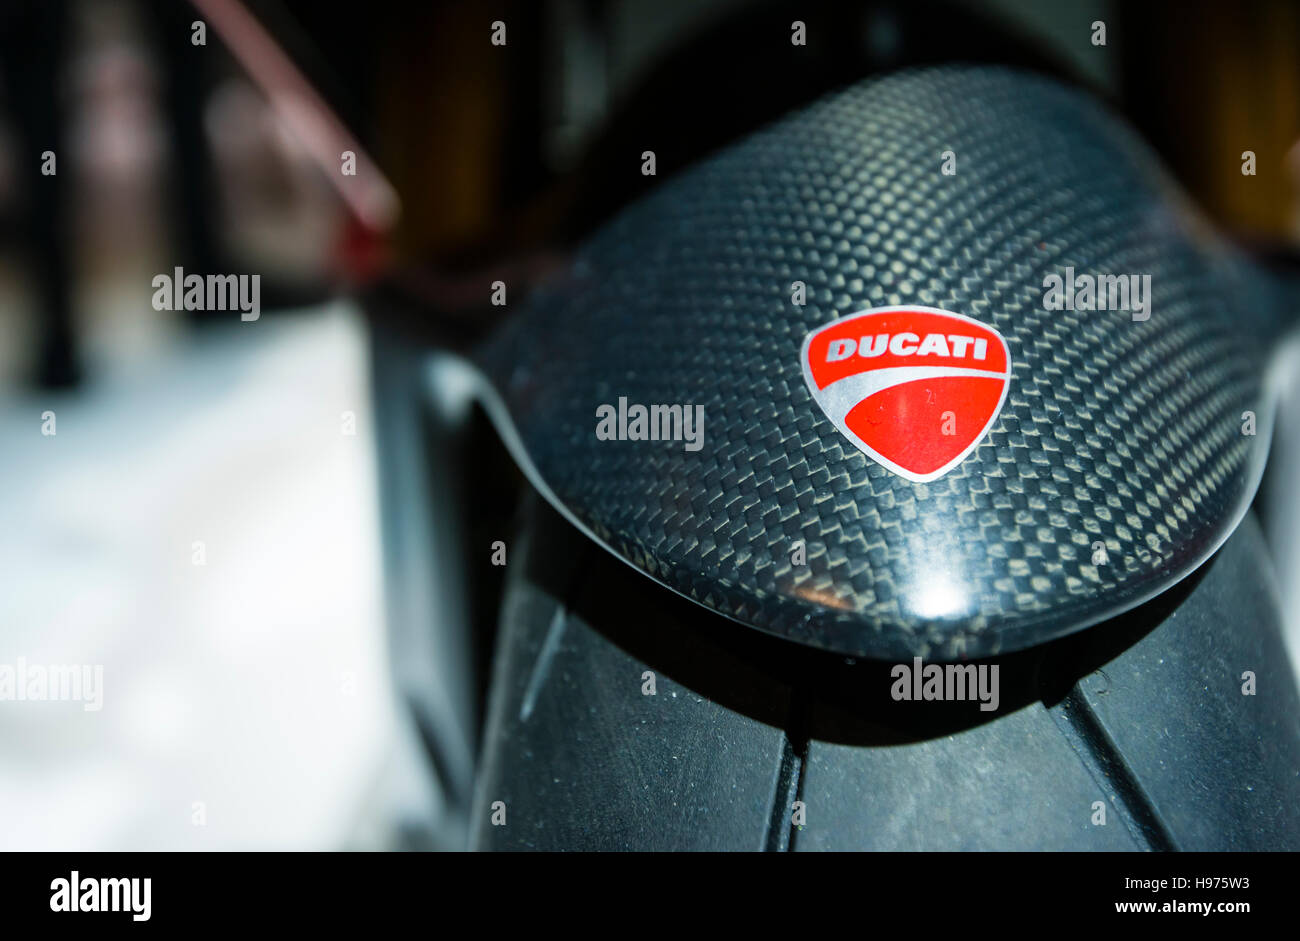 Zurich, Switzerland - 21 Feb 2016: The Ducati logo on a carbon fibre front fender of a Ducati racing motorbike, - Stock Image